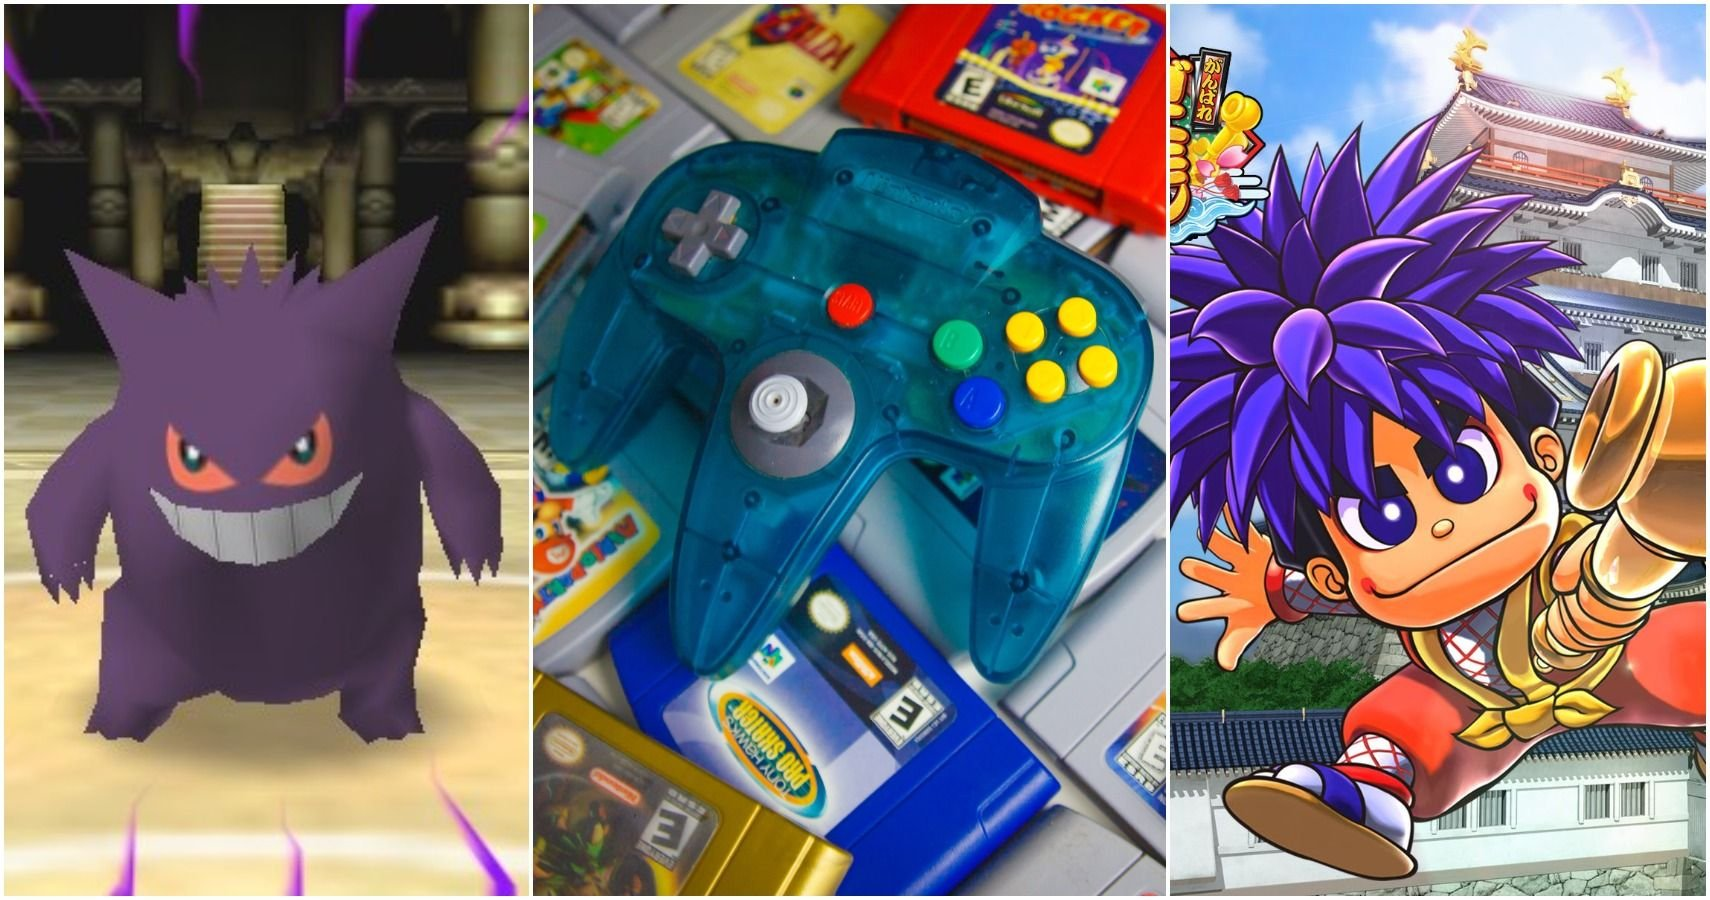 10 N64 Games That Never Got Re-Released (But Really Should Be)